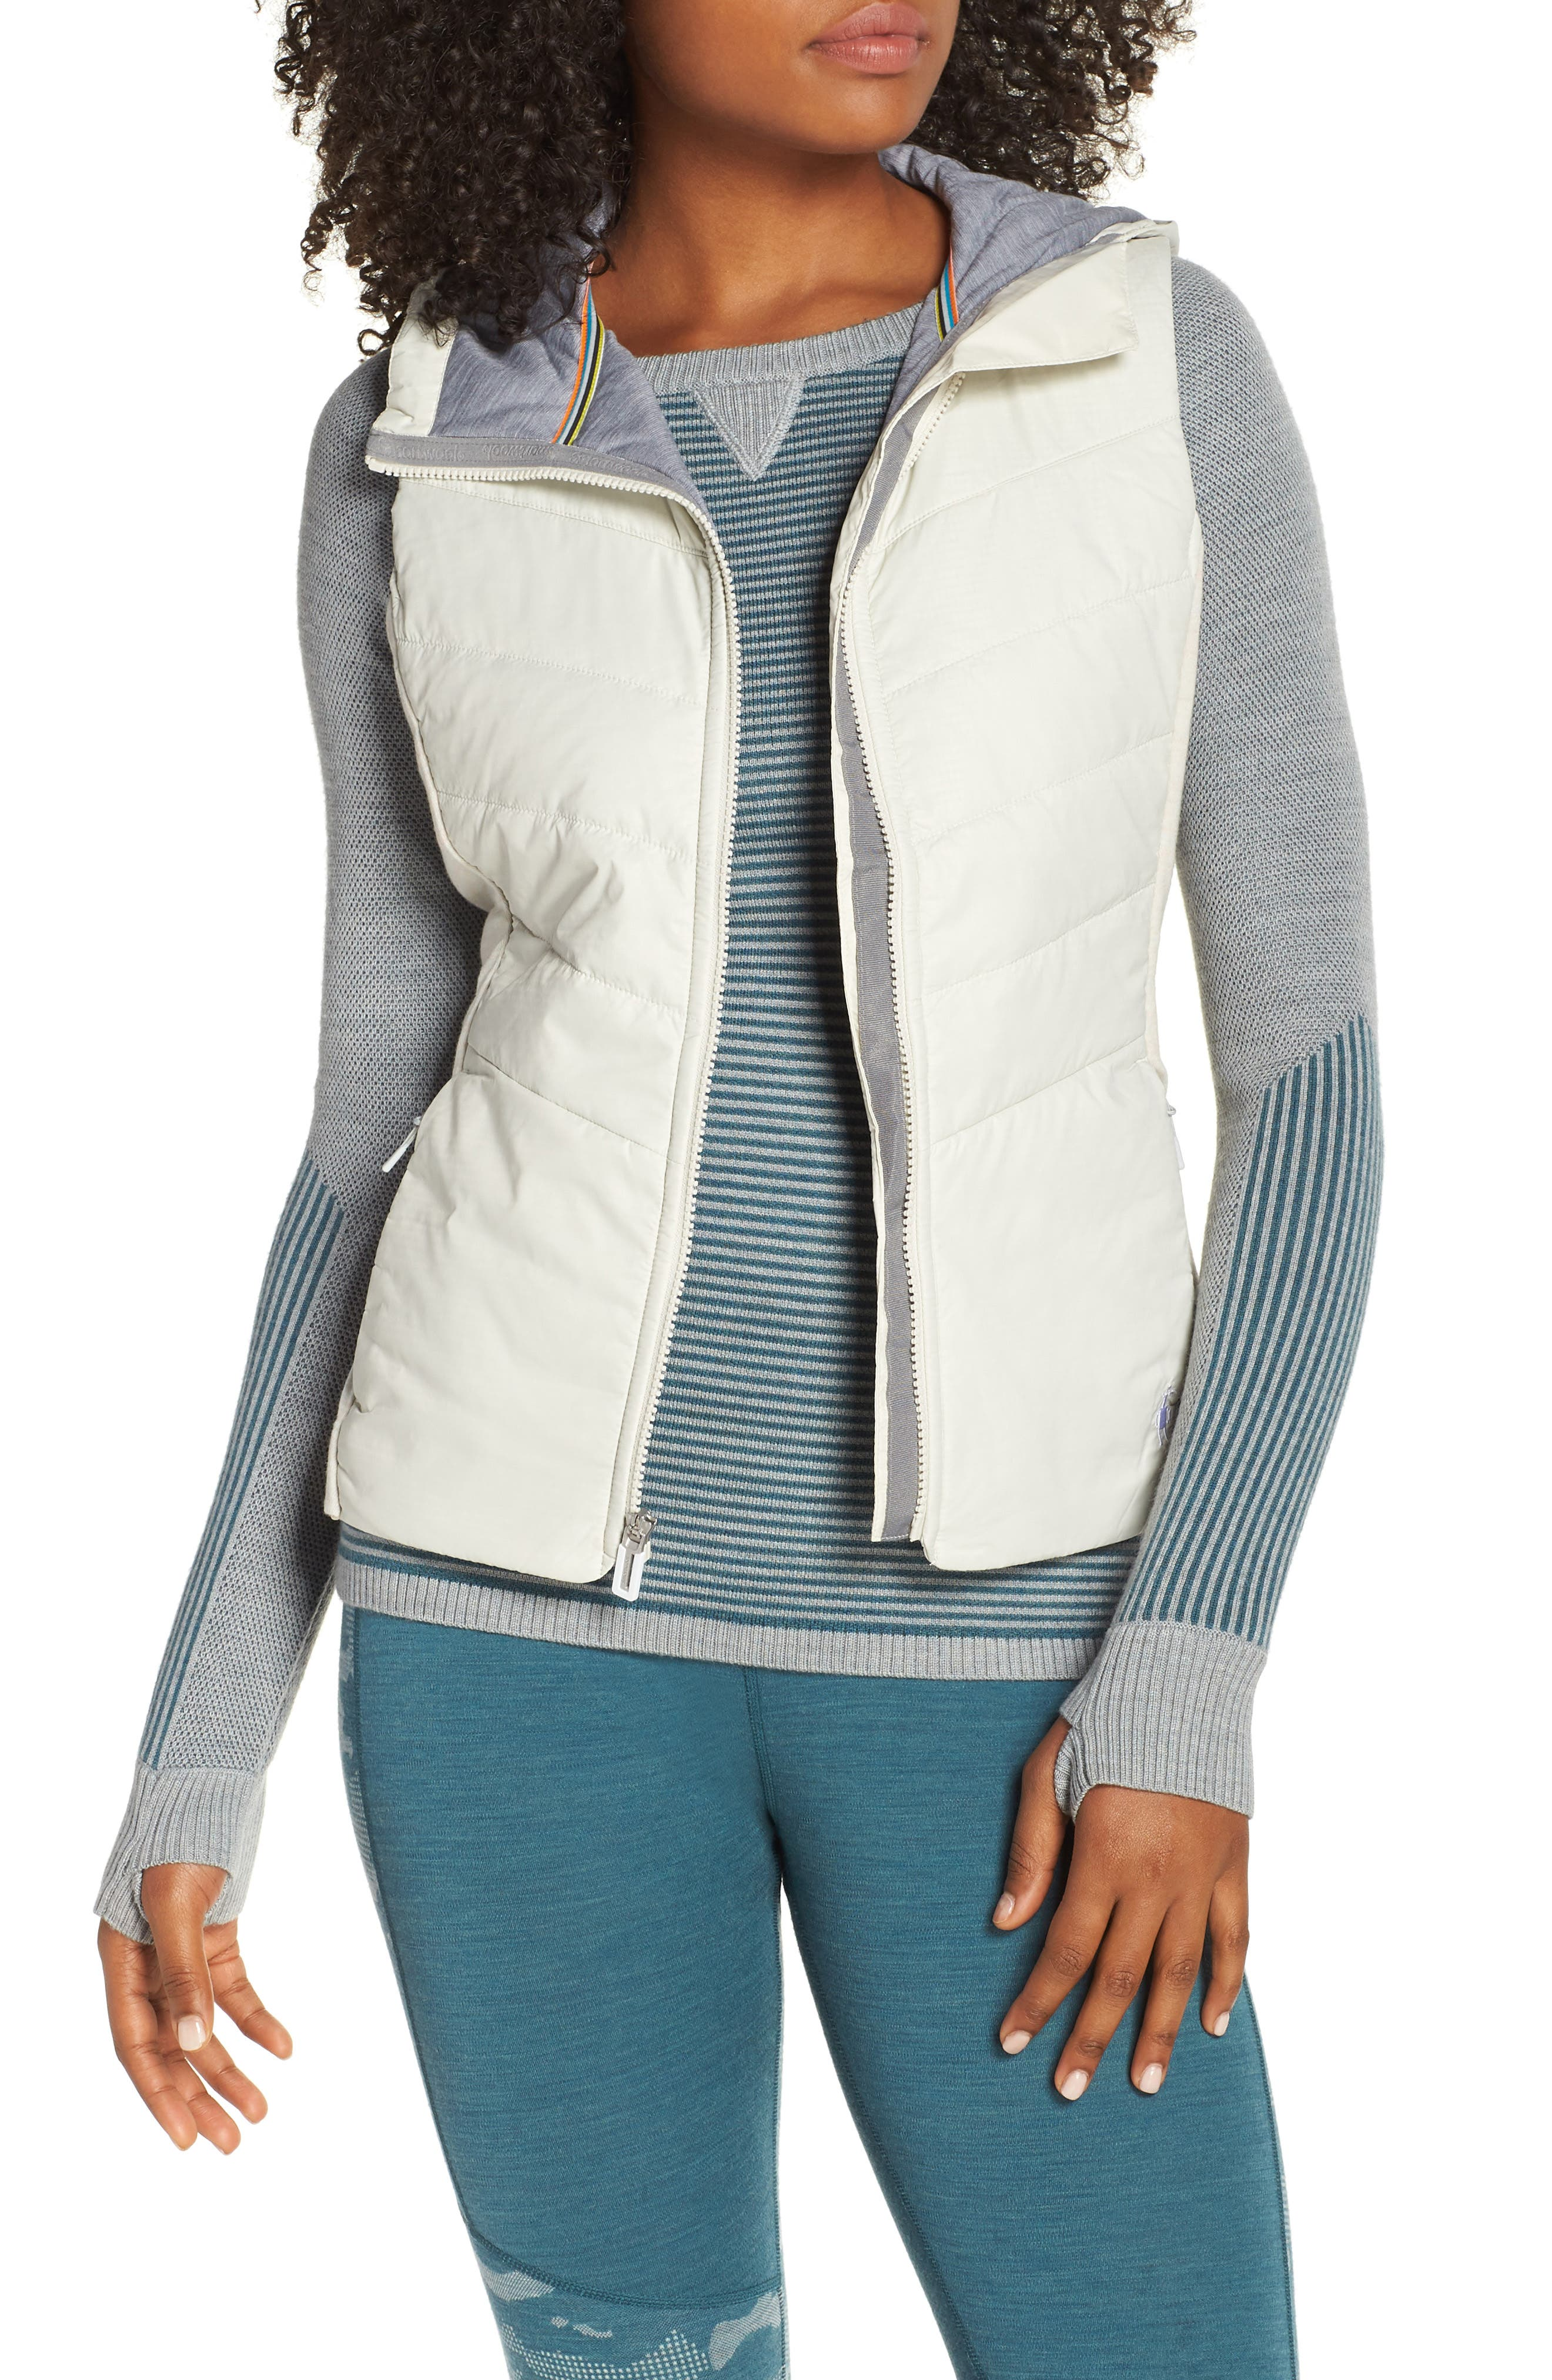 Smartloft 60 Insulated Hooded Vest,                             Main thumbnail 1, color,                             025